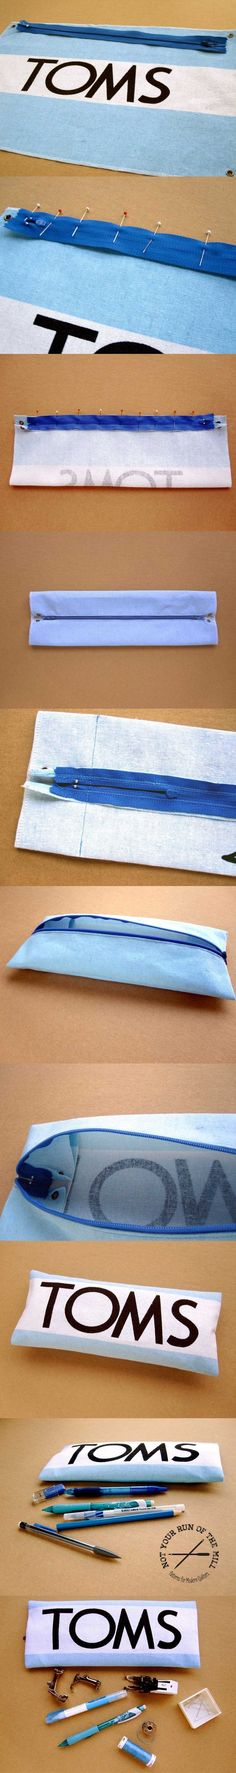 i am DEFINITELY making this cute pencil case!!!